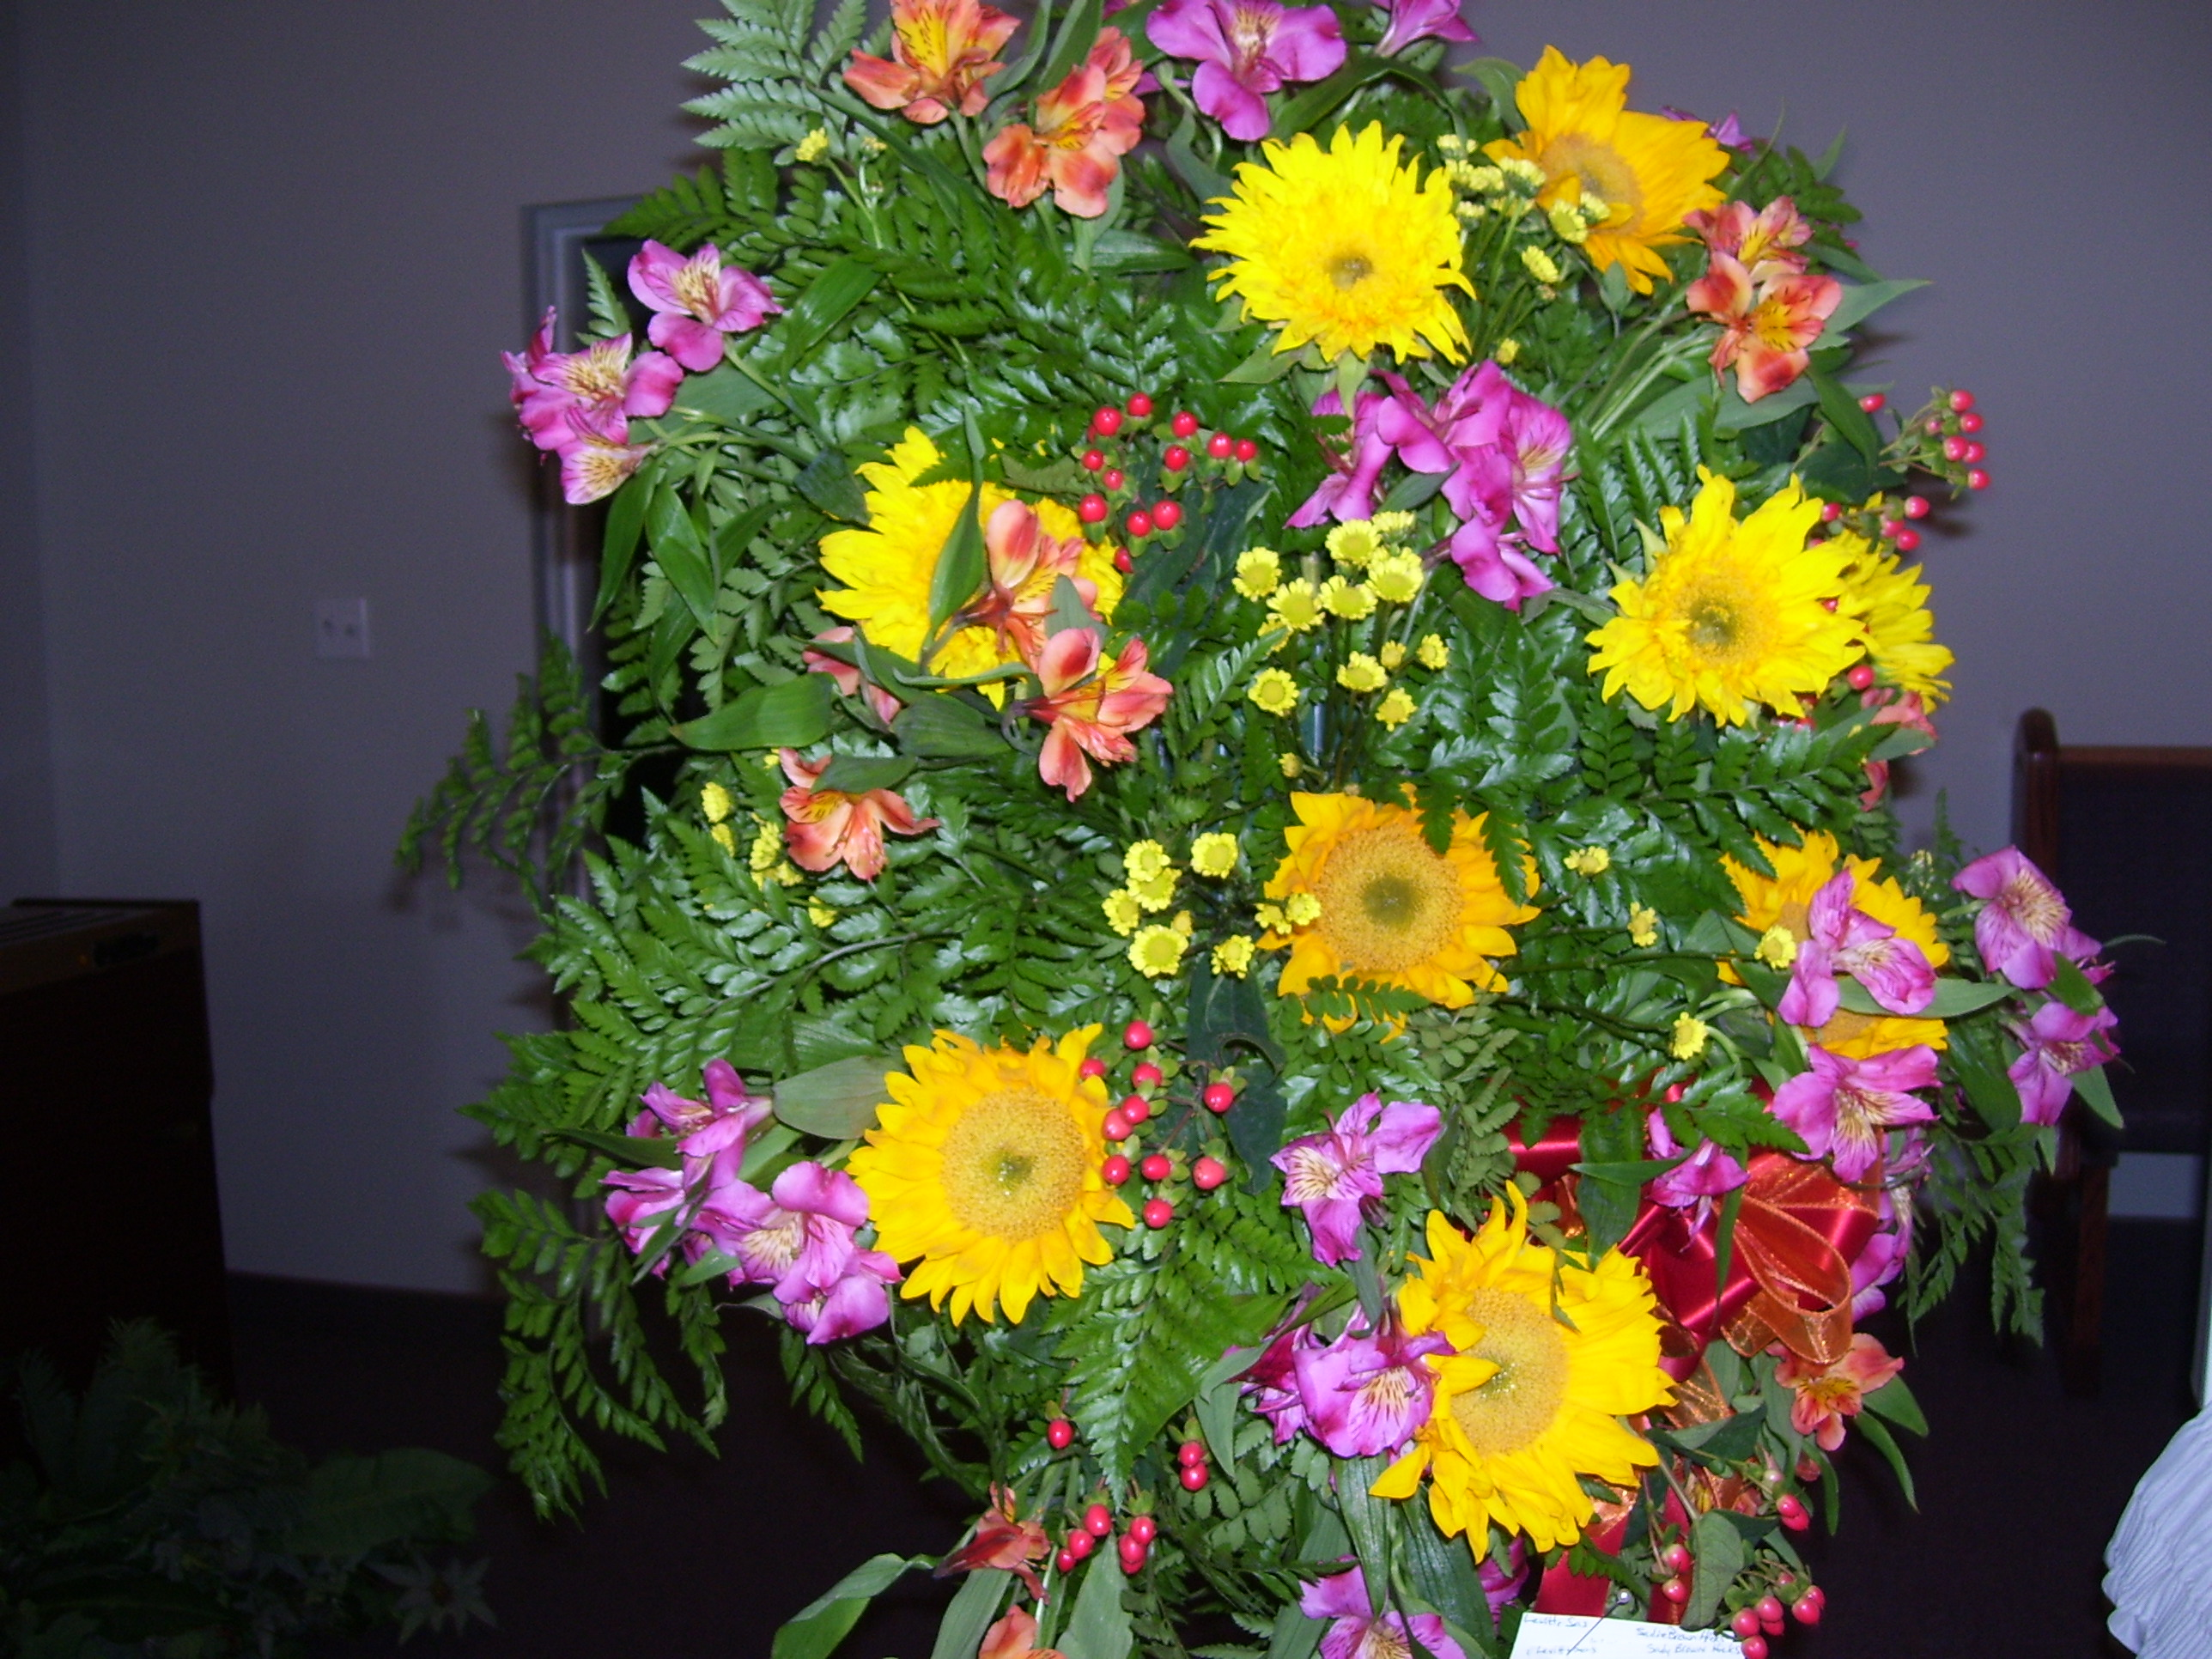 Funeral flowers and condolences flowery banchga hoschtonga funeral flowers available for delivery local and atlanta buford hoschton flowery branch braselton oakwood izmirmasajfo